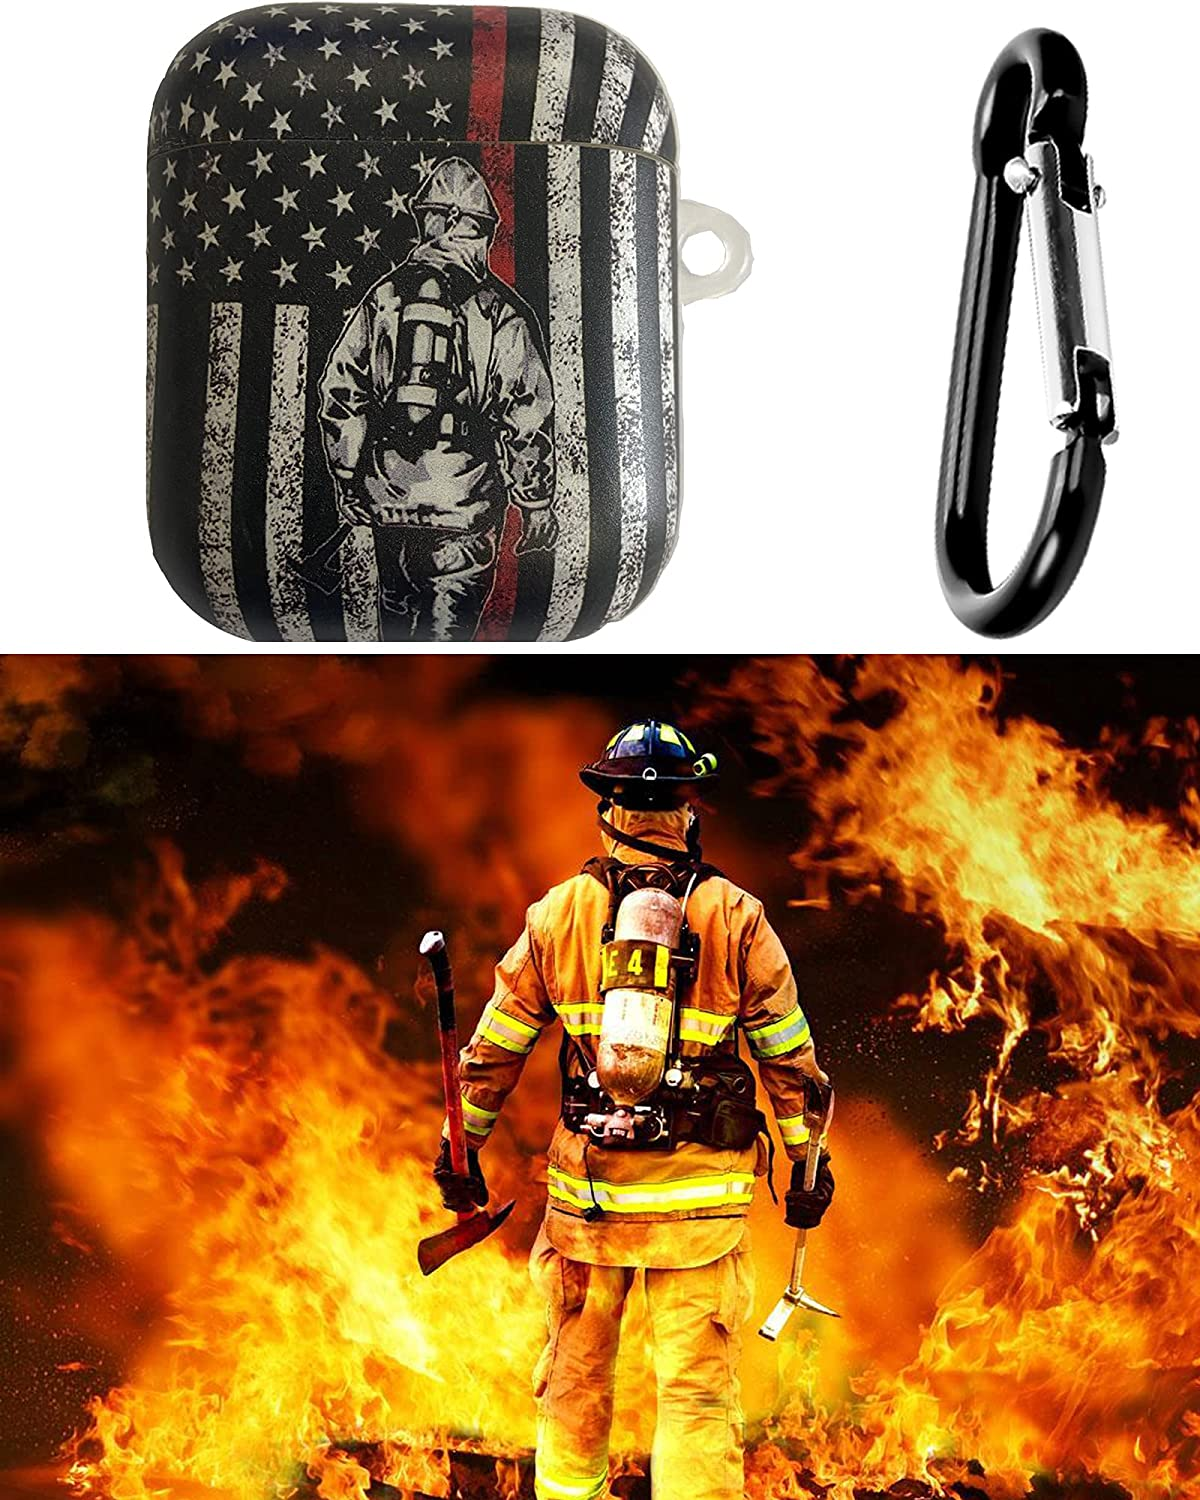 Thin RED Line American Flag AirPods 1&2 Case with Keychain Salutes to The fire Man Designed Compatible with Apple AirPods 1&2 Silicone Skins - Protects- Shock-Absorbing Protective Case